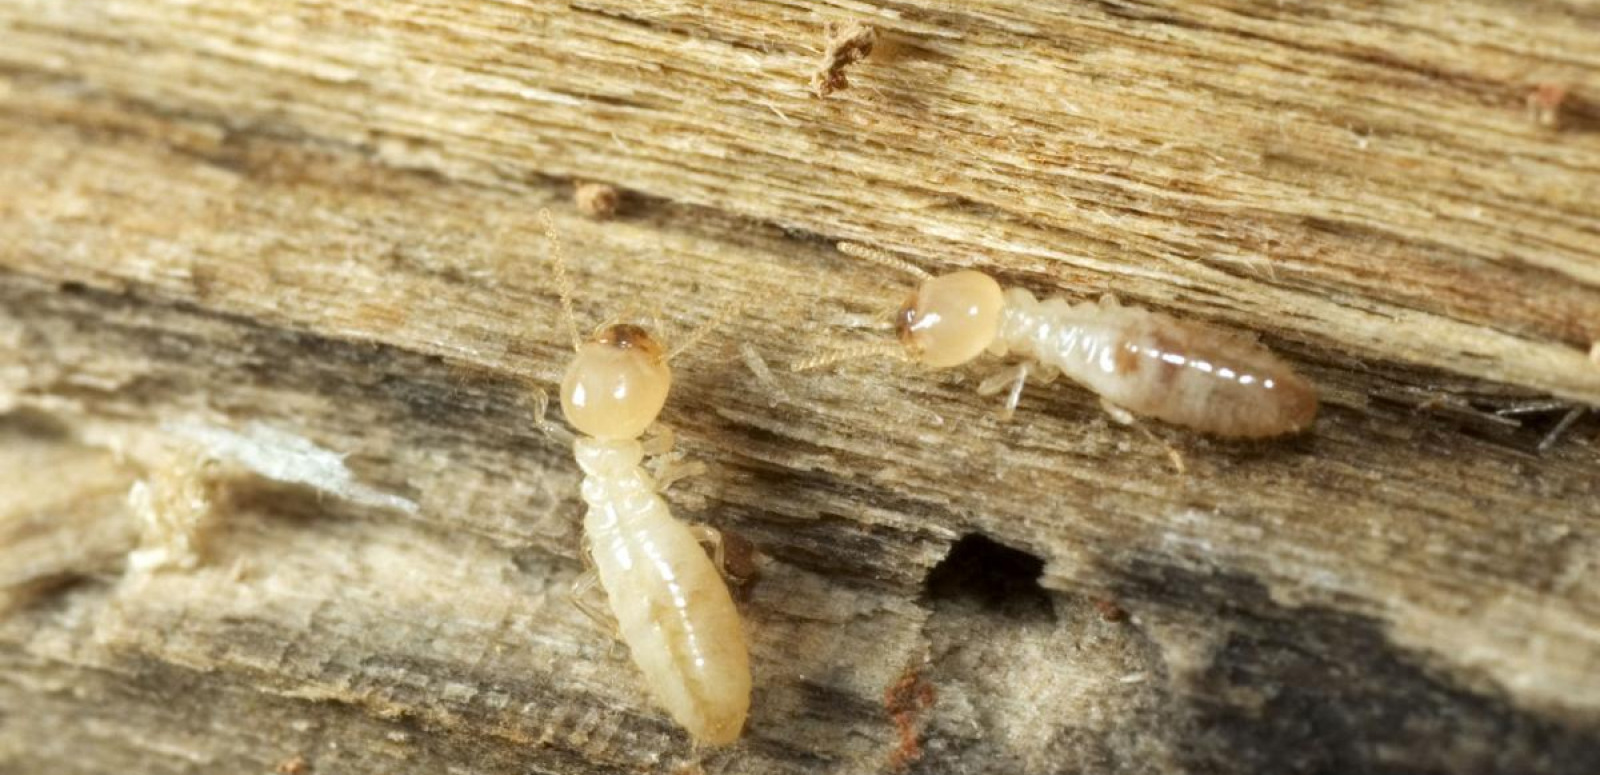 Termites cause billions of dollars in damage